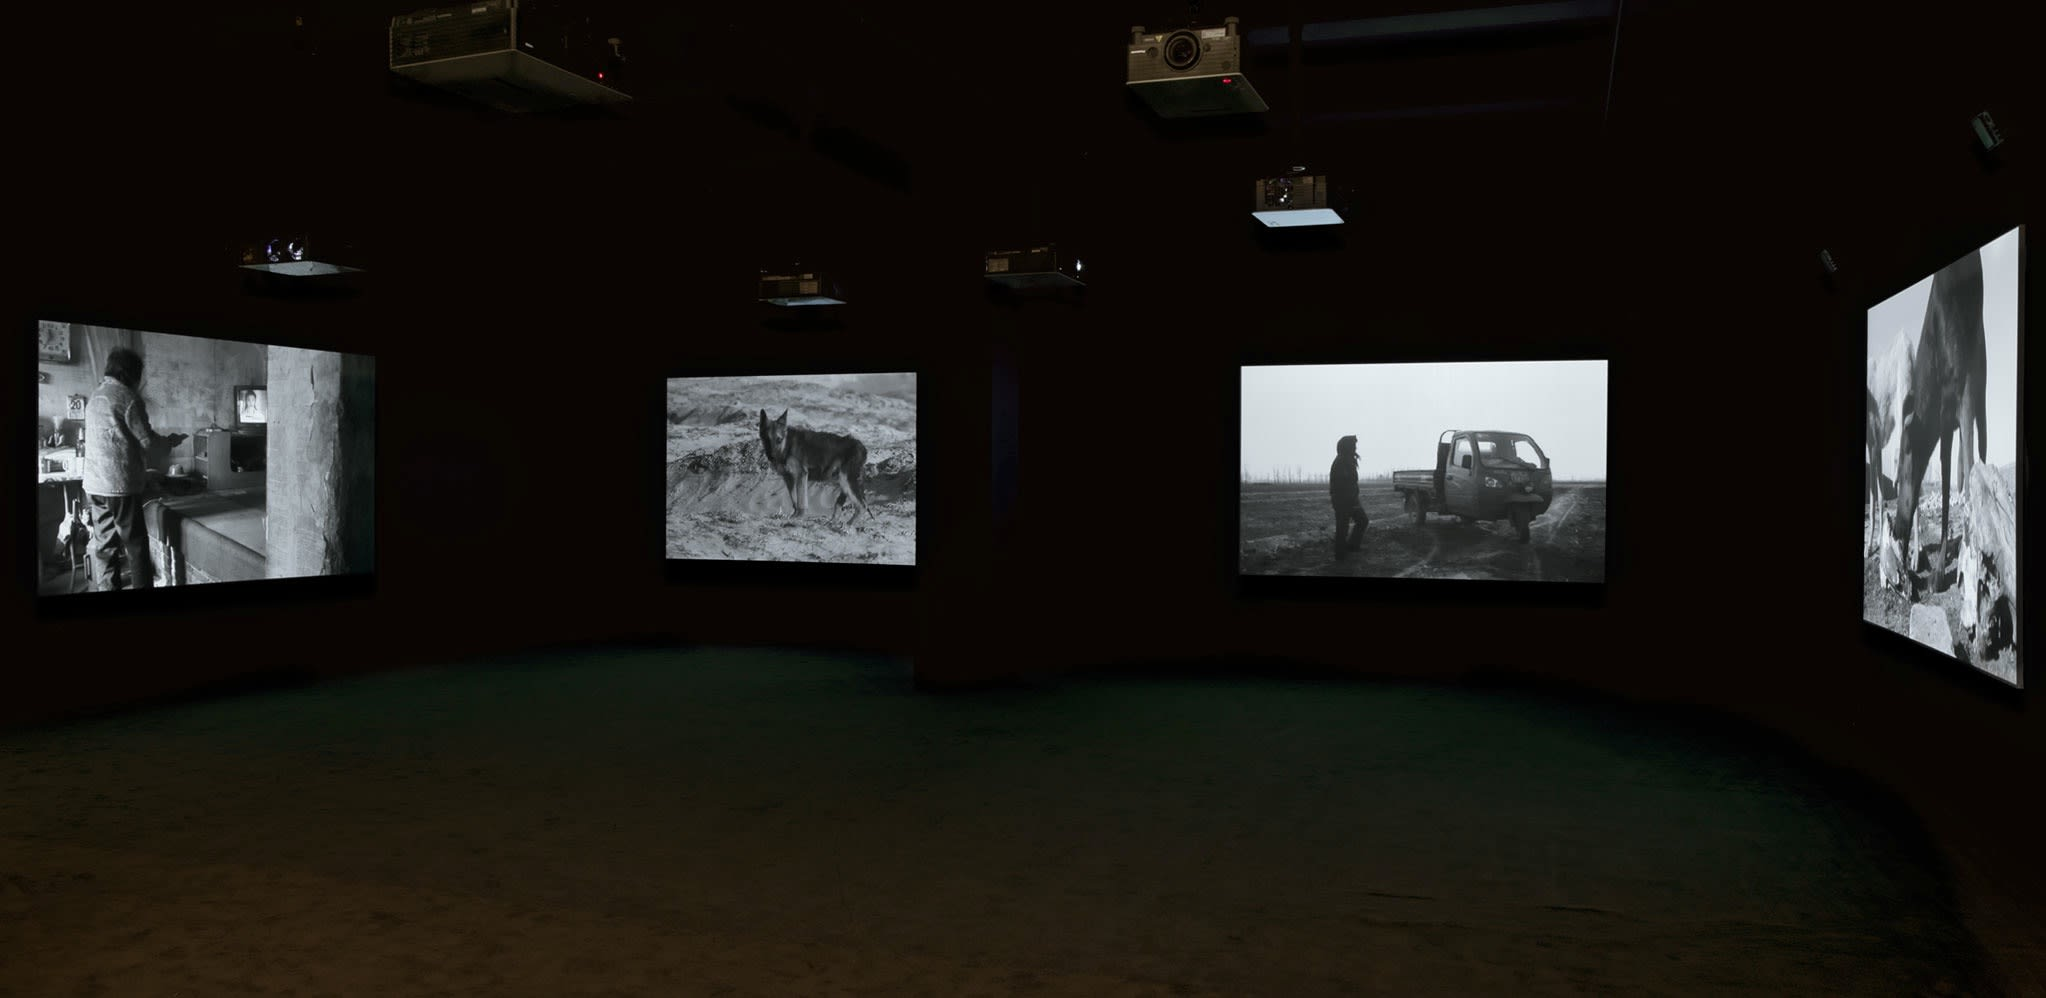 Four black and white images depicting various dogs and farm life are projected around a dark room.